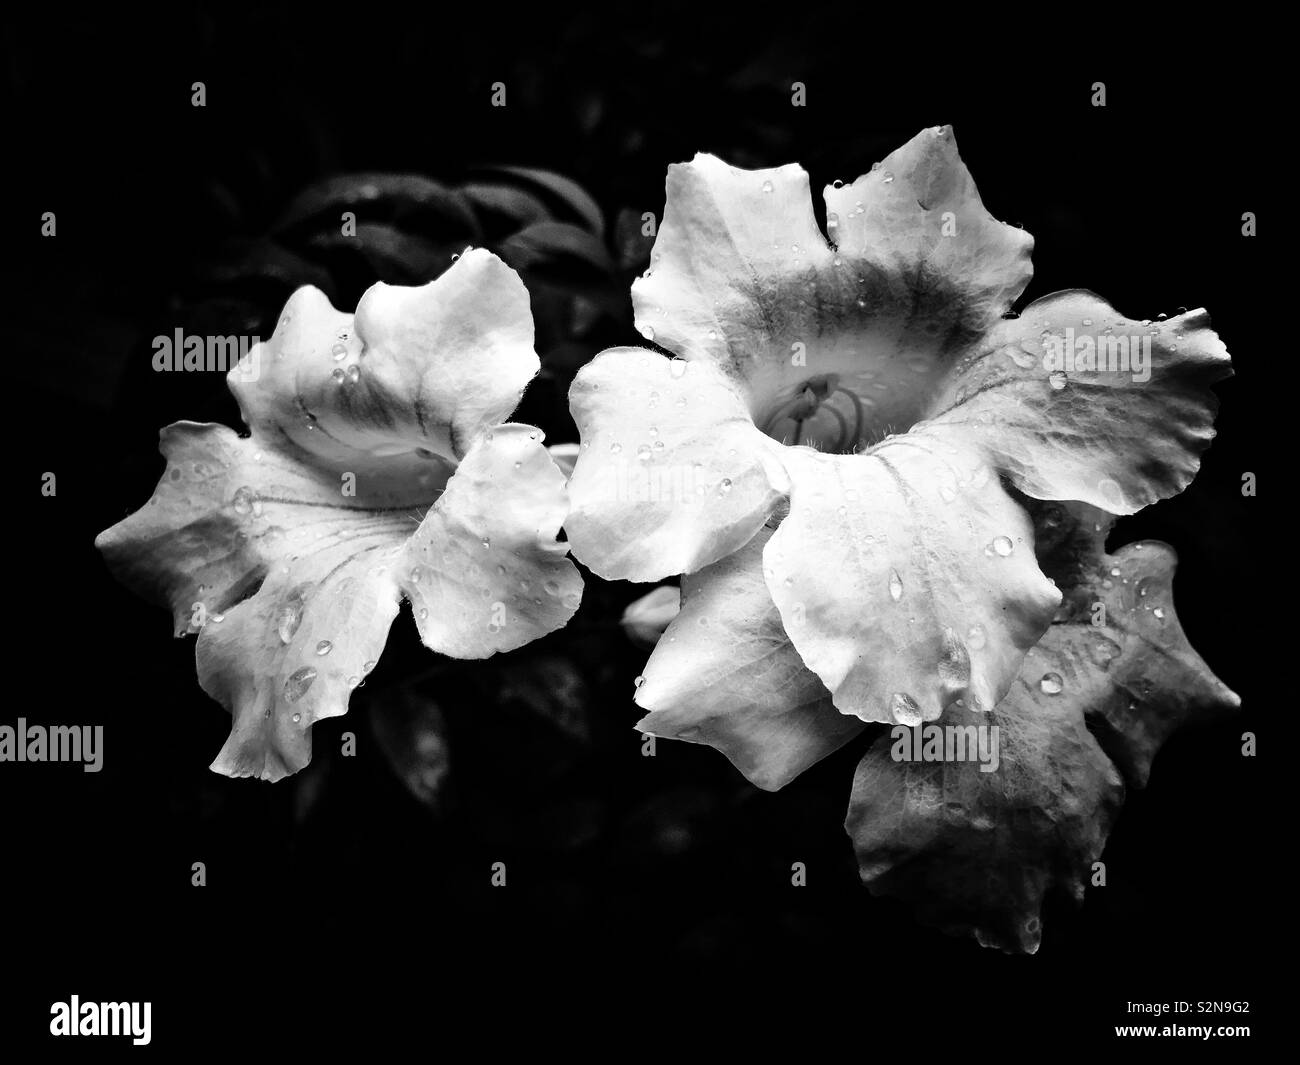 Black and white image of three beautiful flowers covered in water droplets. - Stock Image